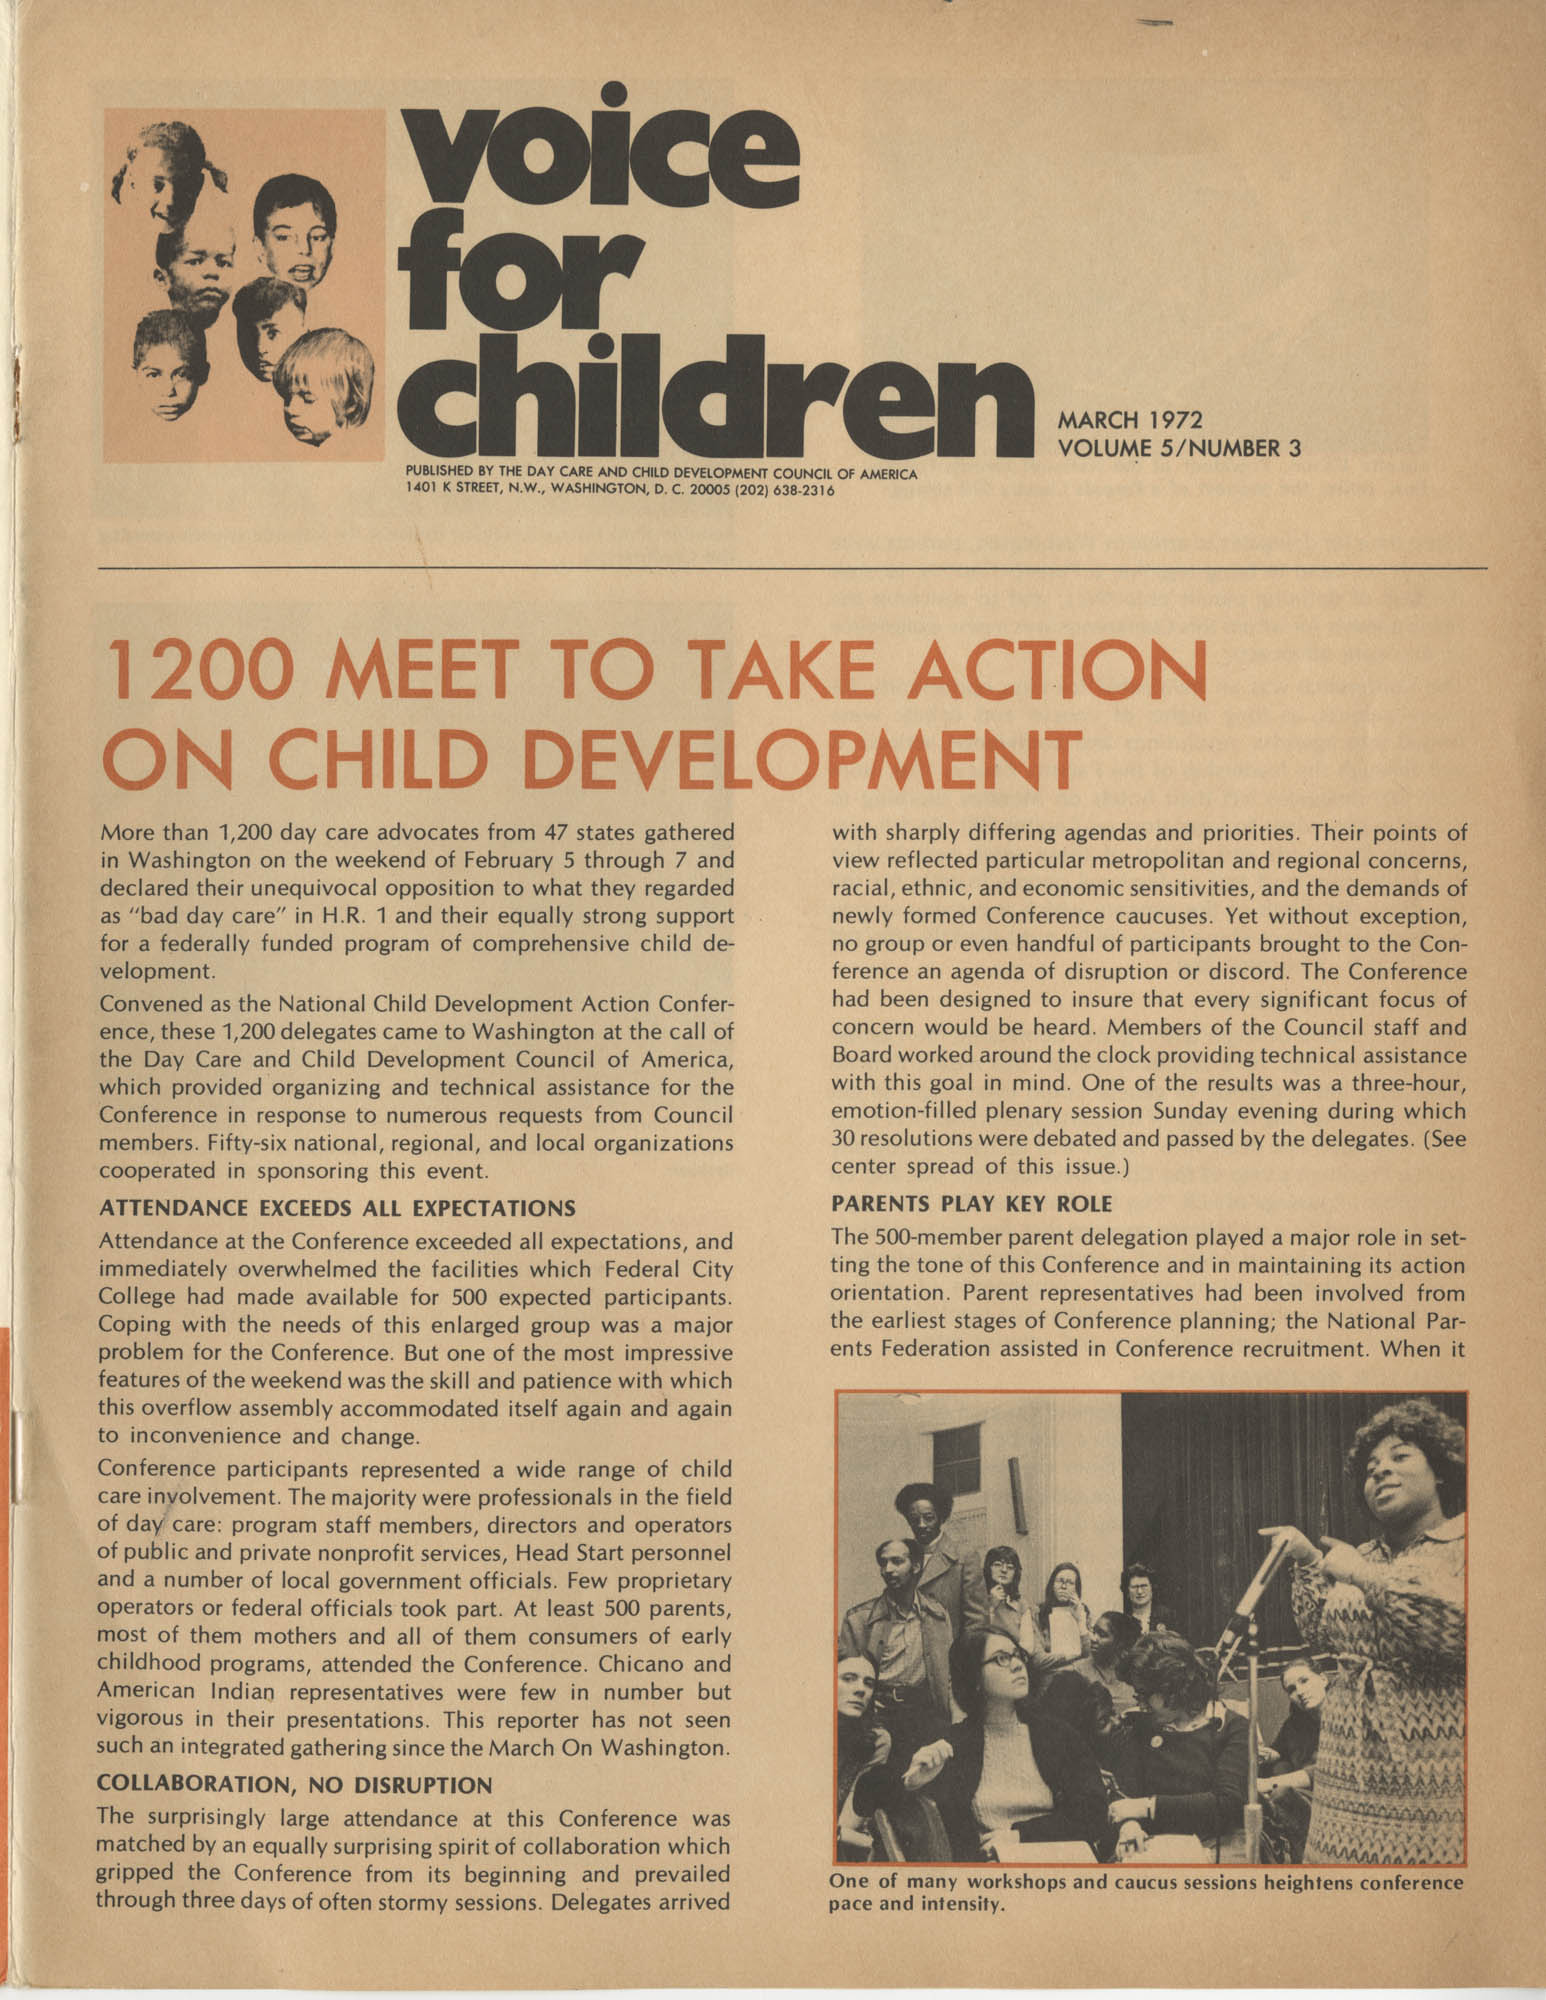 Voice For Children, Volume 5, Number 3, Cover